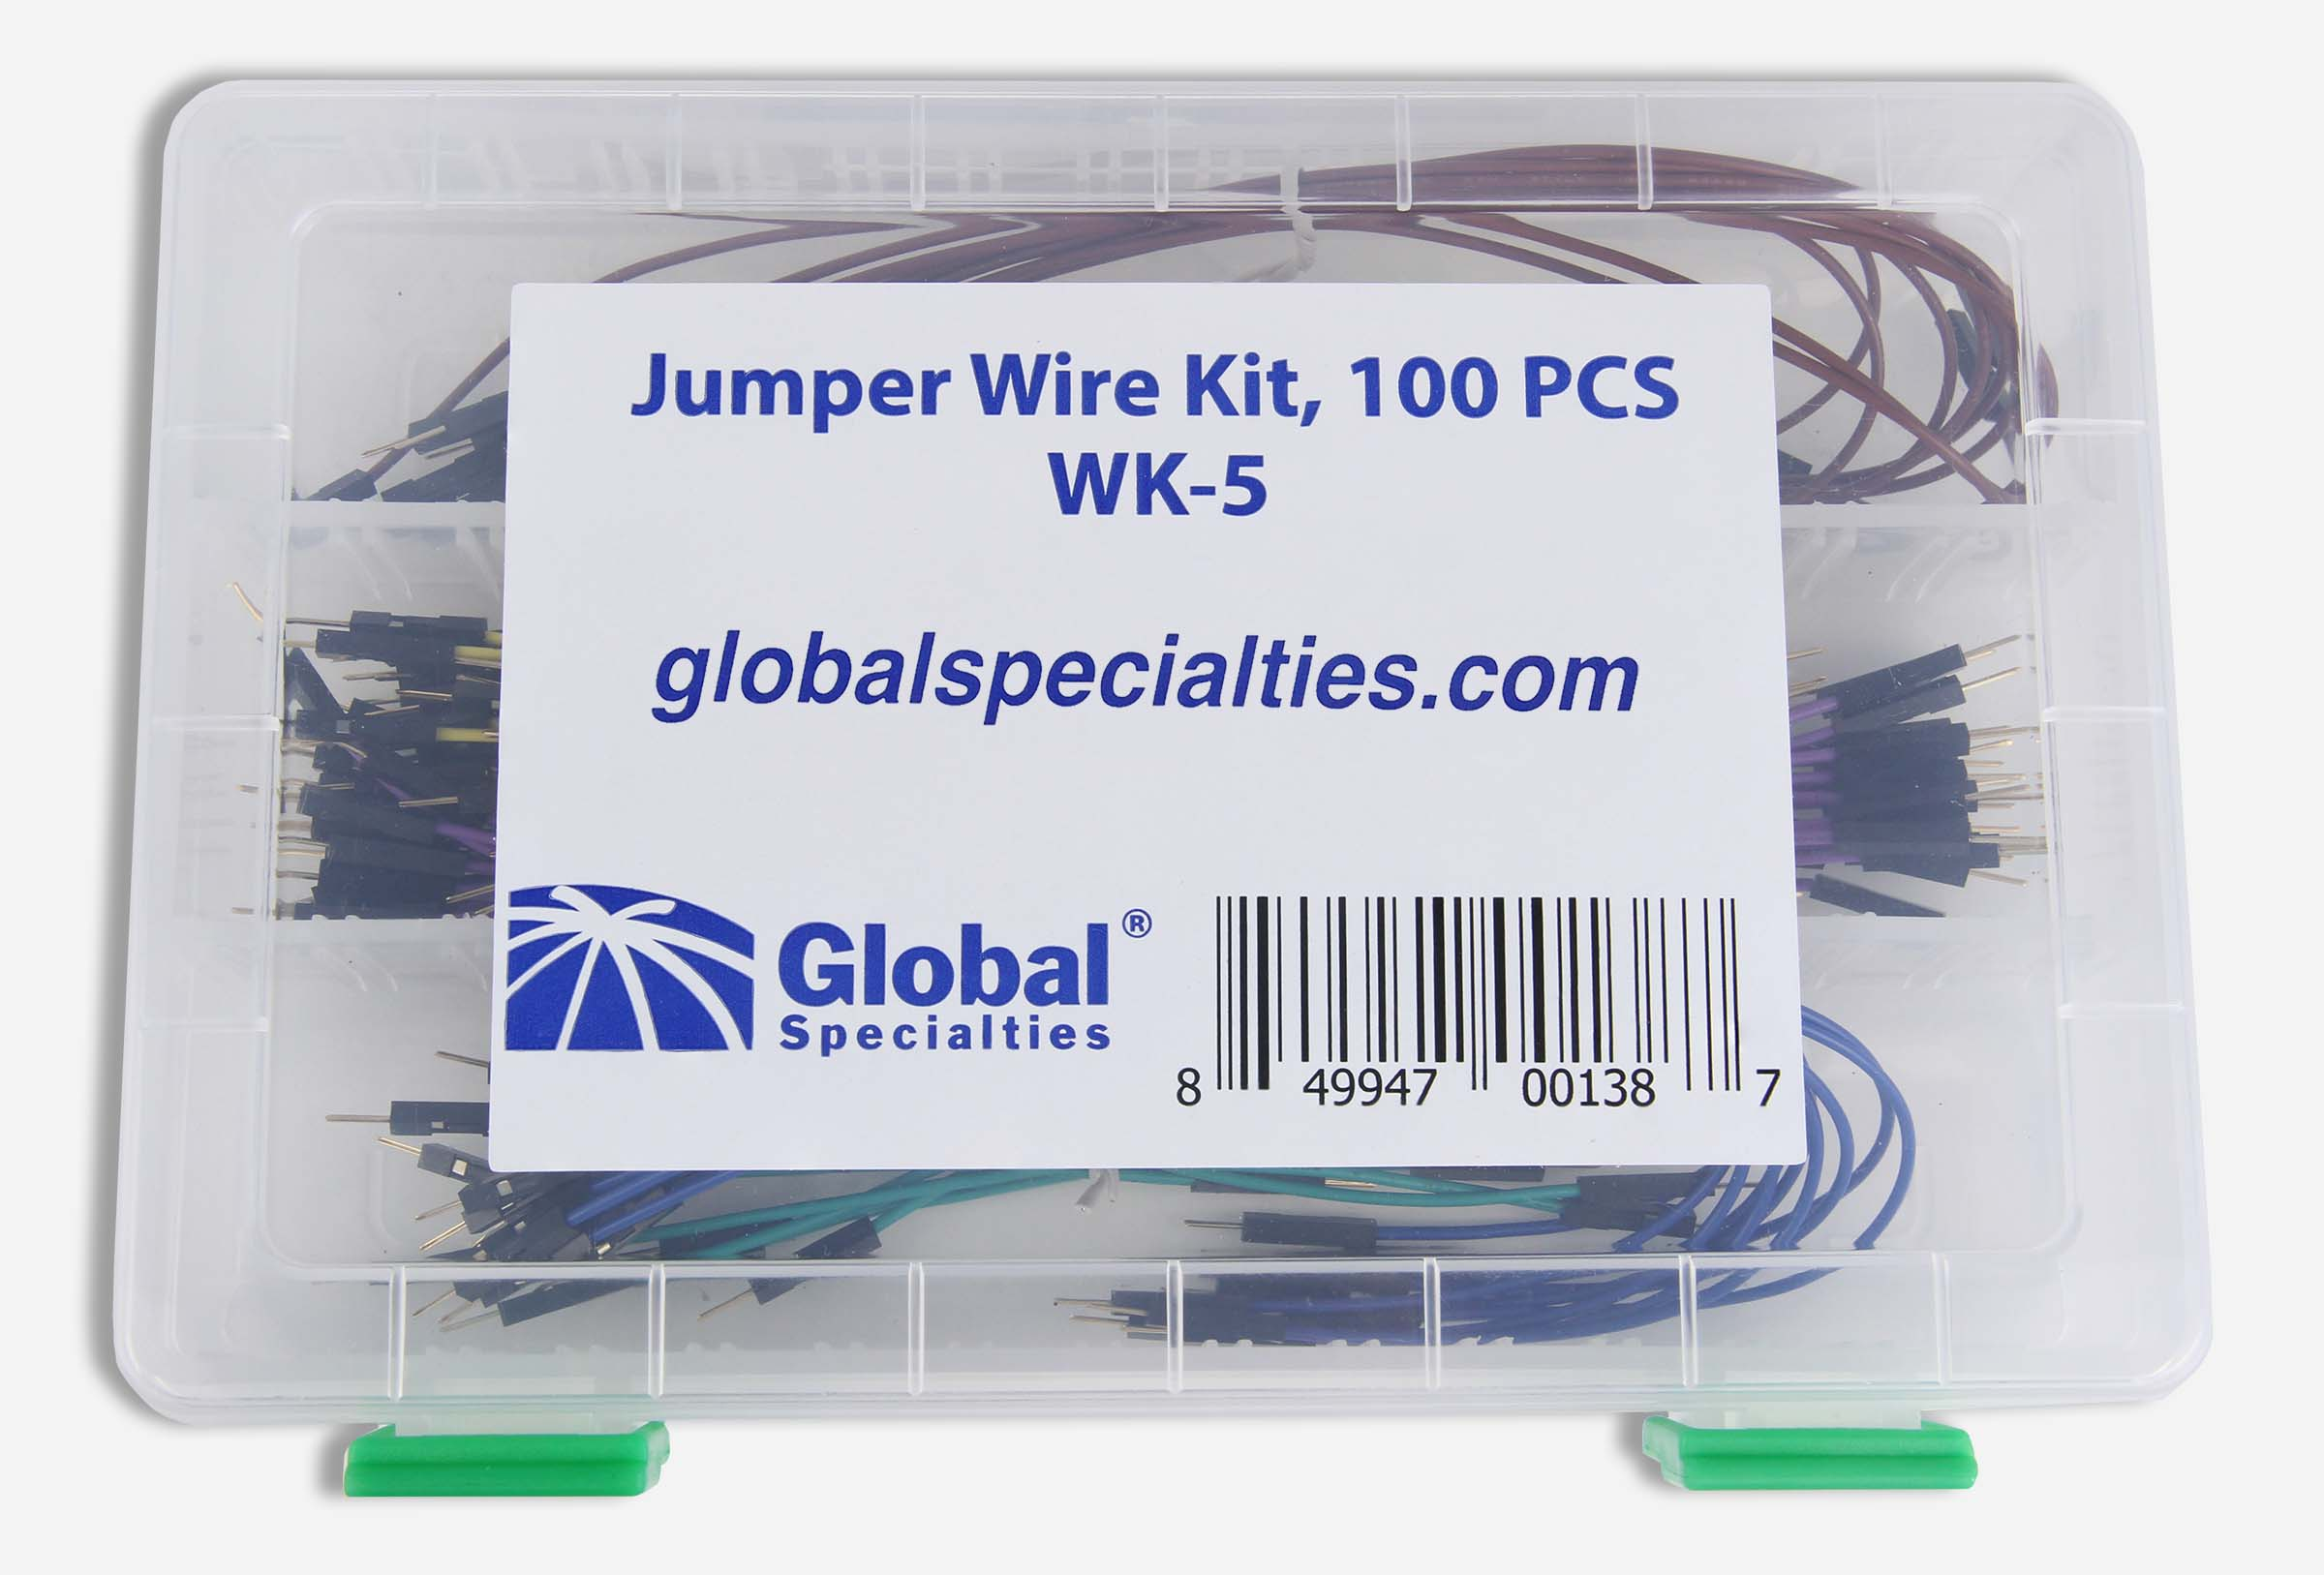 Global Specialties WK-5 Jumper Wire Kit, 100 Pcs Photo